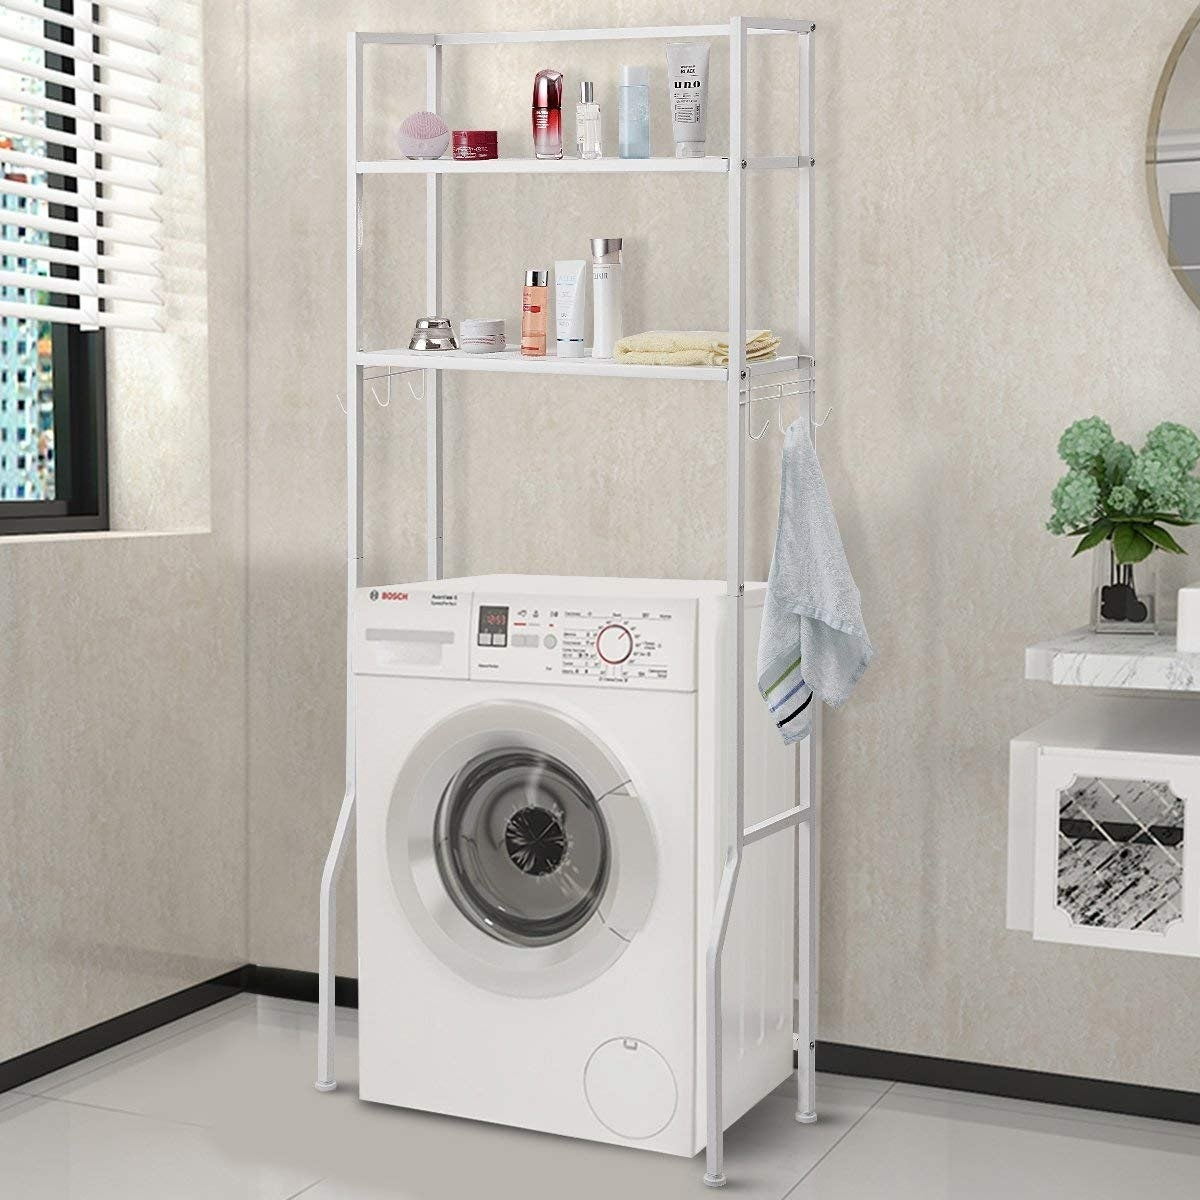 "Promising review: ""This is absolutely the BEST laundry room space saving product I've ever purchased! This is so worth the price and is very durable and clean looking. It decluttered my small laundry space, and now it looks legit. It's perfect for a portable washer if you live in an apartment setting."" —RAw RAw meowGet it from Amazon for $37.99."